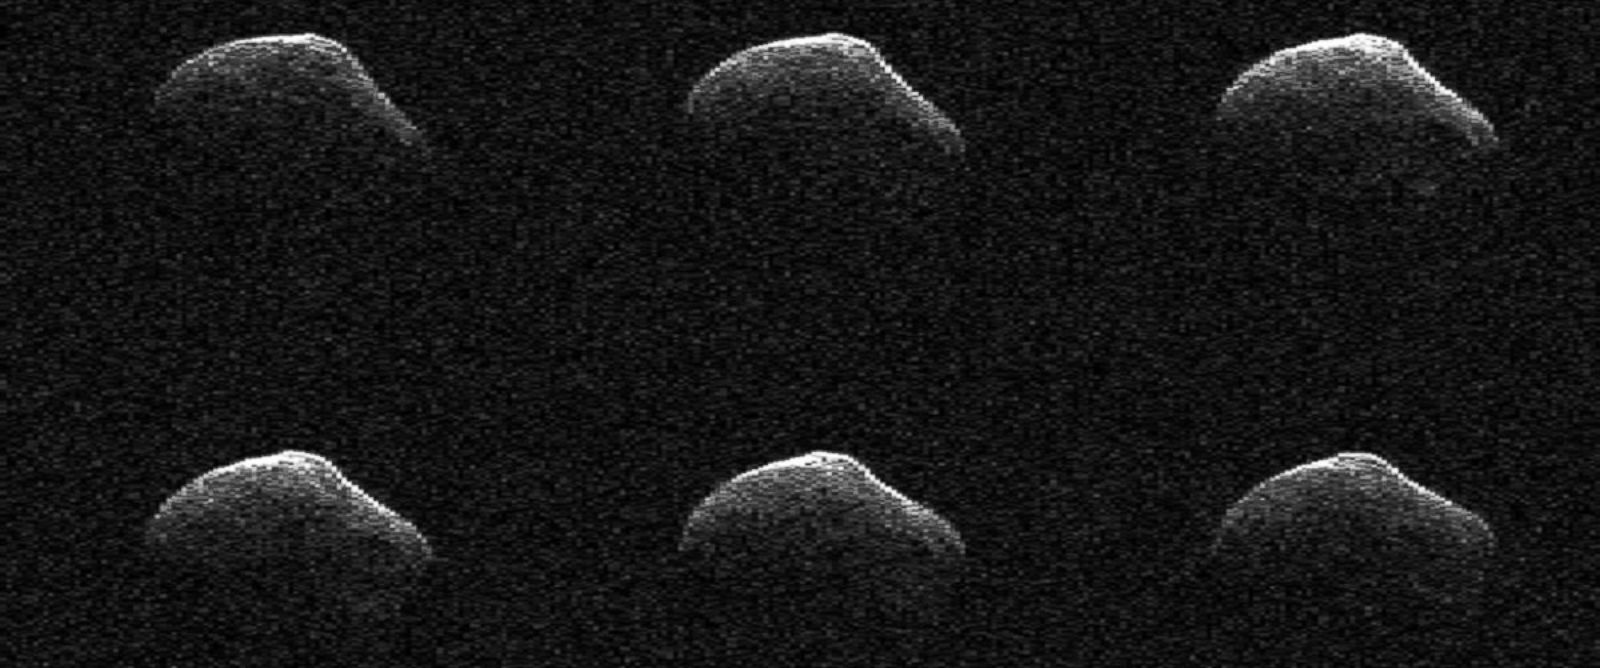 PHOTO: NASA captured radar images of comet P/2016 BA14 as it moved past Earth.